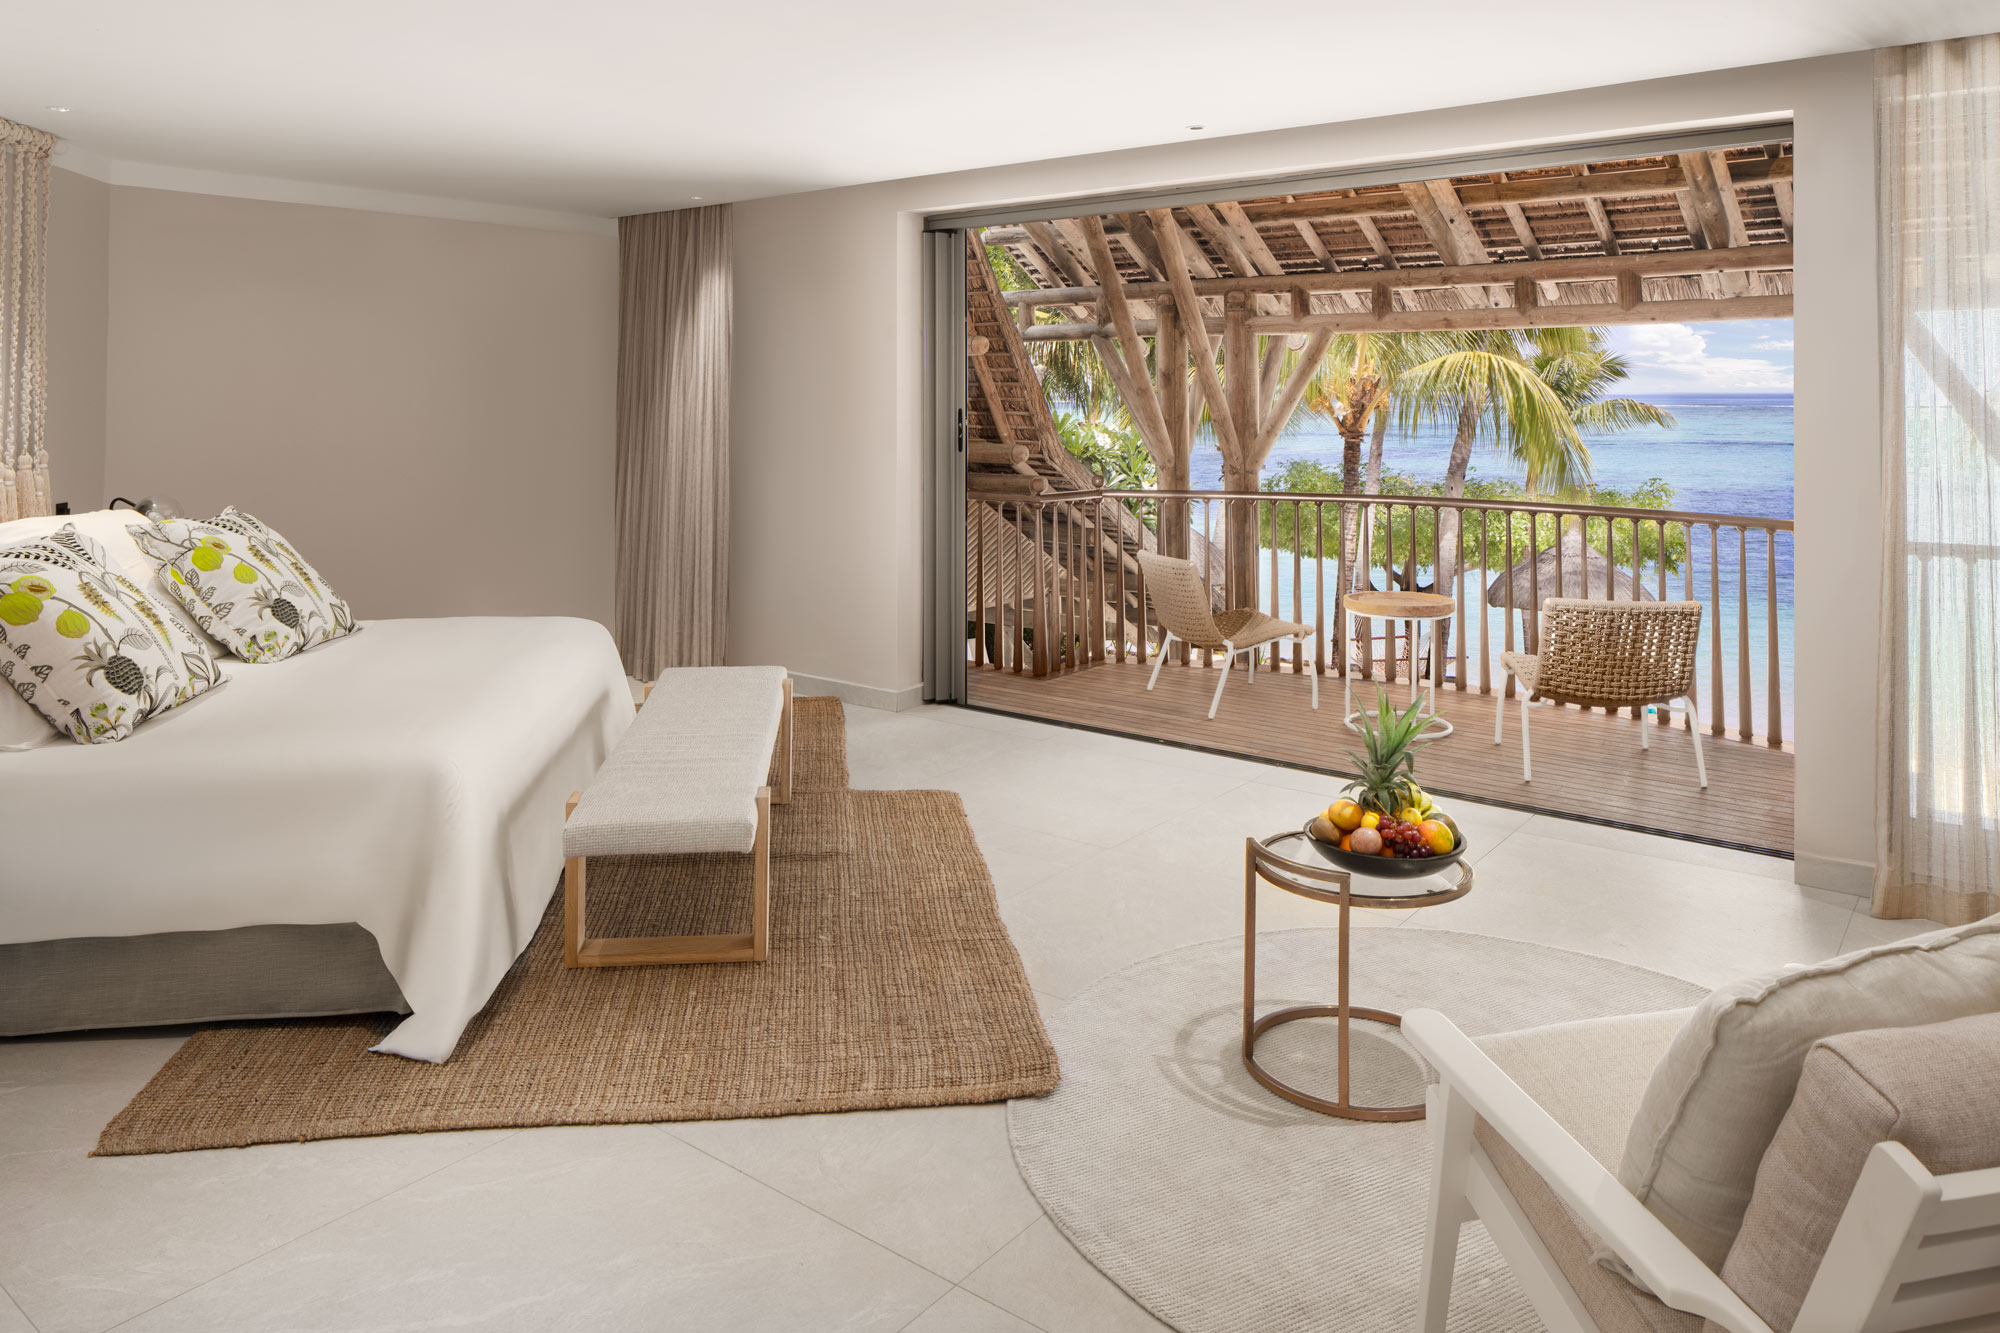 Luxury Hotel Bedroom – Photography by Adrian Kilchherr; Hotel Resort Photographer Mauritius Africa Switzerland